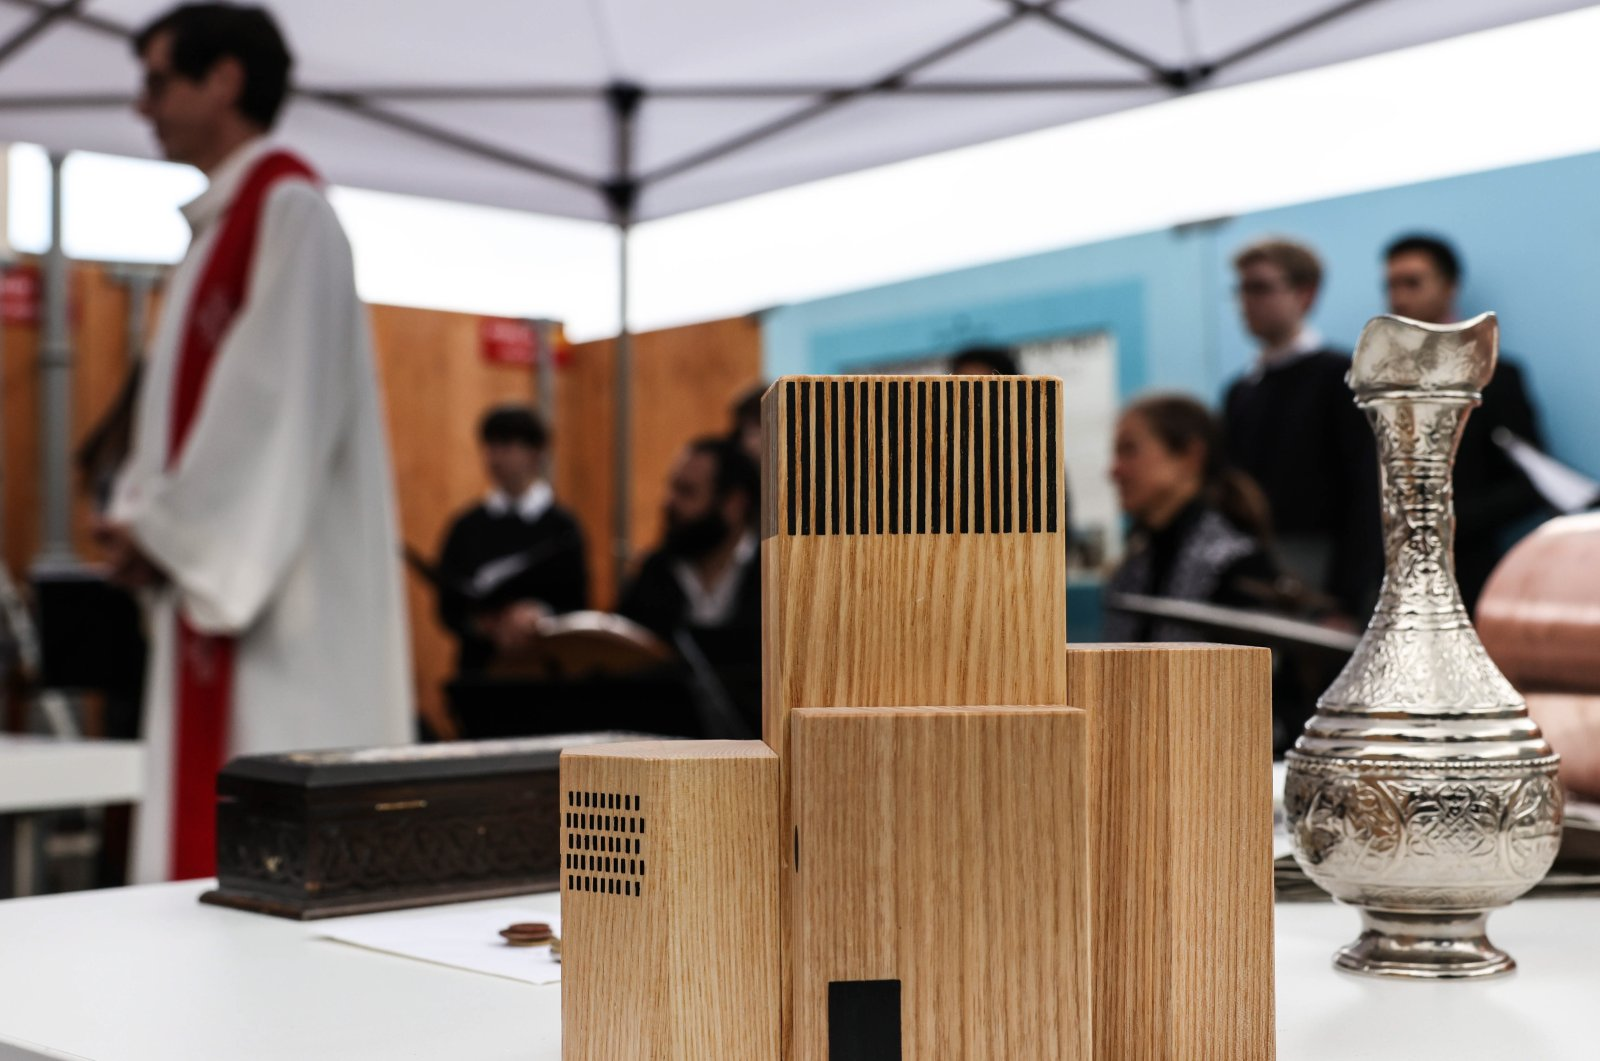 """A view of the wooden model of the multi-religious """"House of One"""" building during its laying of the foundation stone ceremony in Berlin, Germany, May 27, 2021. (EPA Photo)"""